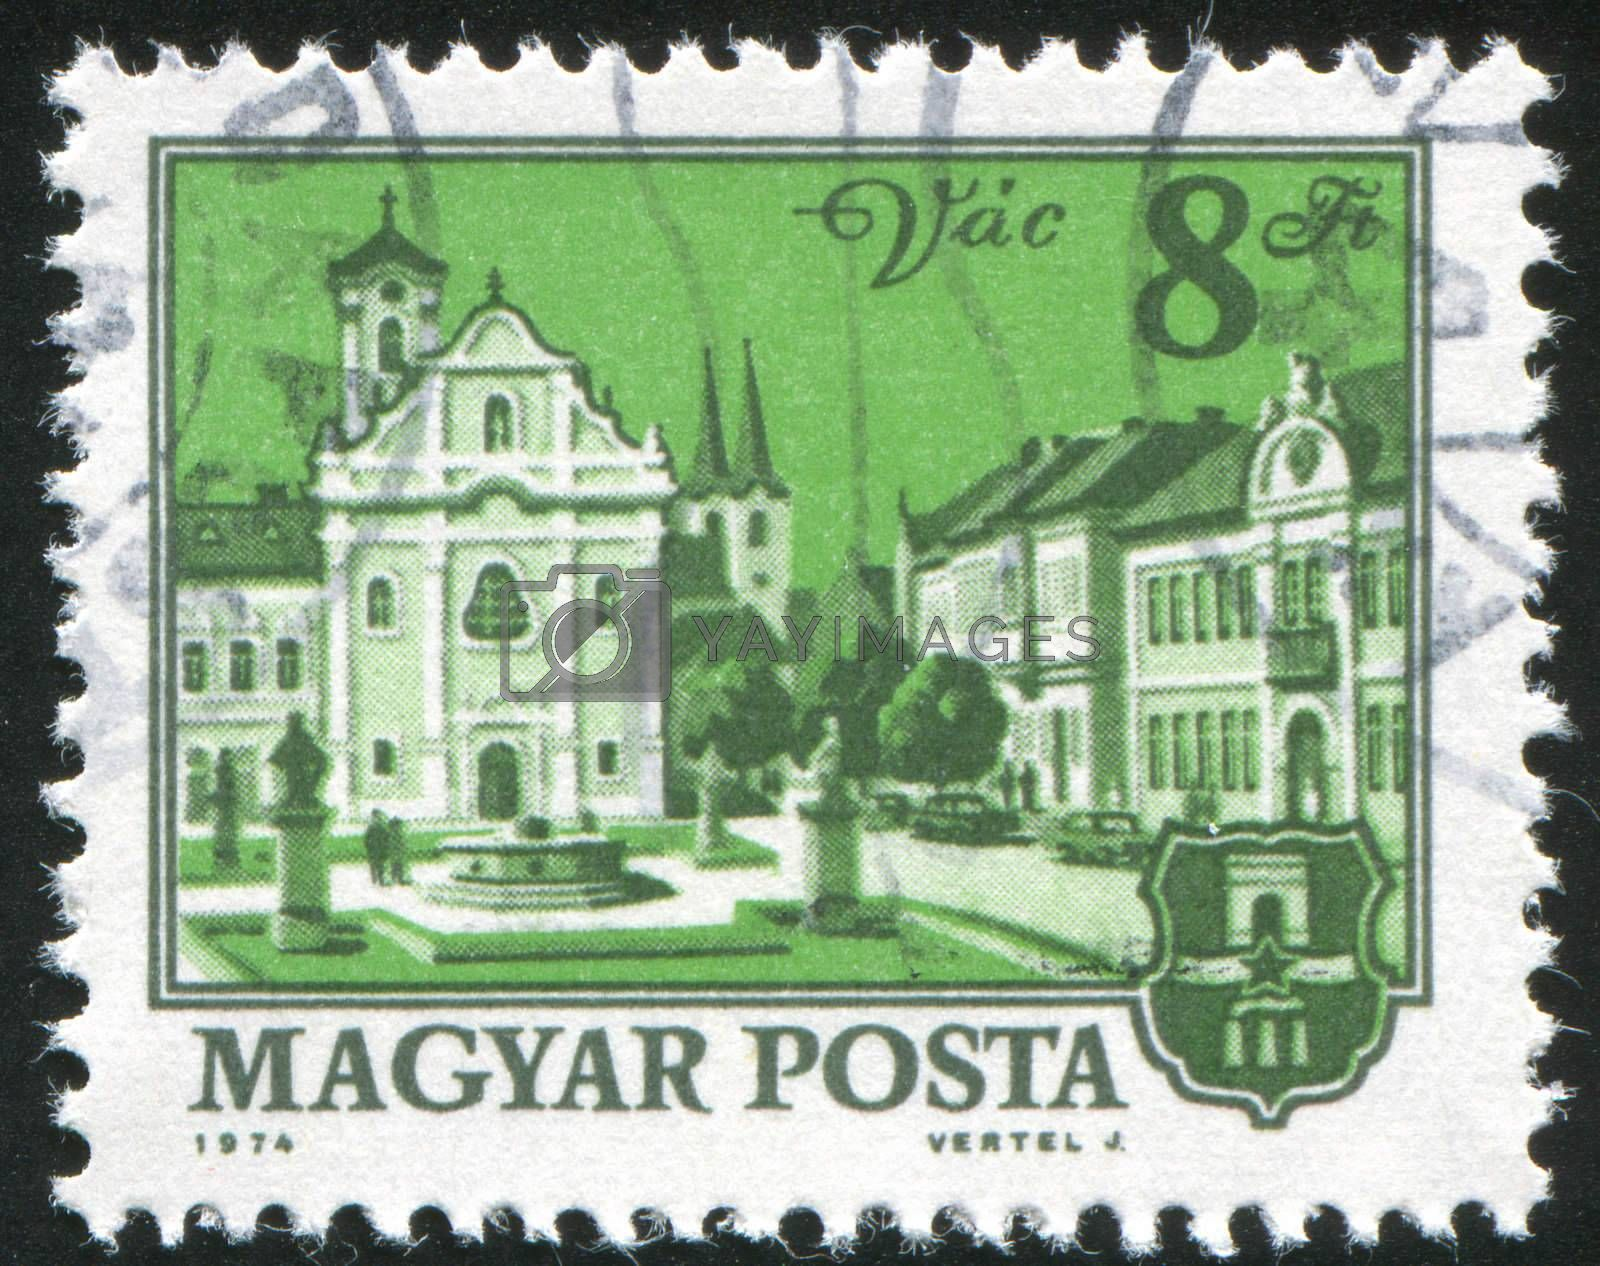 HUNGARY - CIRCA 1974: stamp printed by Hungary, shows Church and city hall, Vac, circa 1974